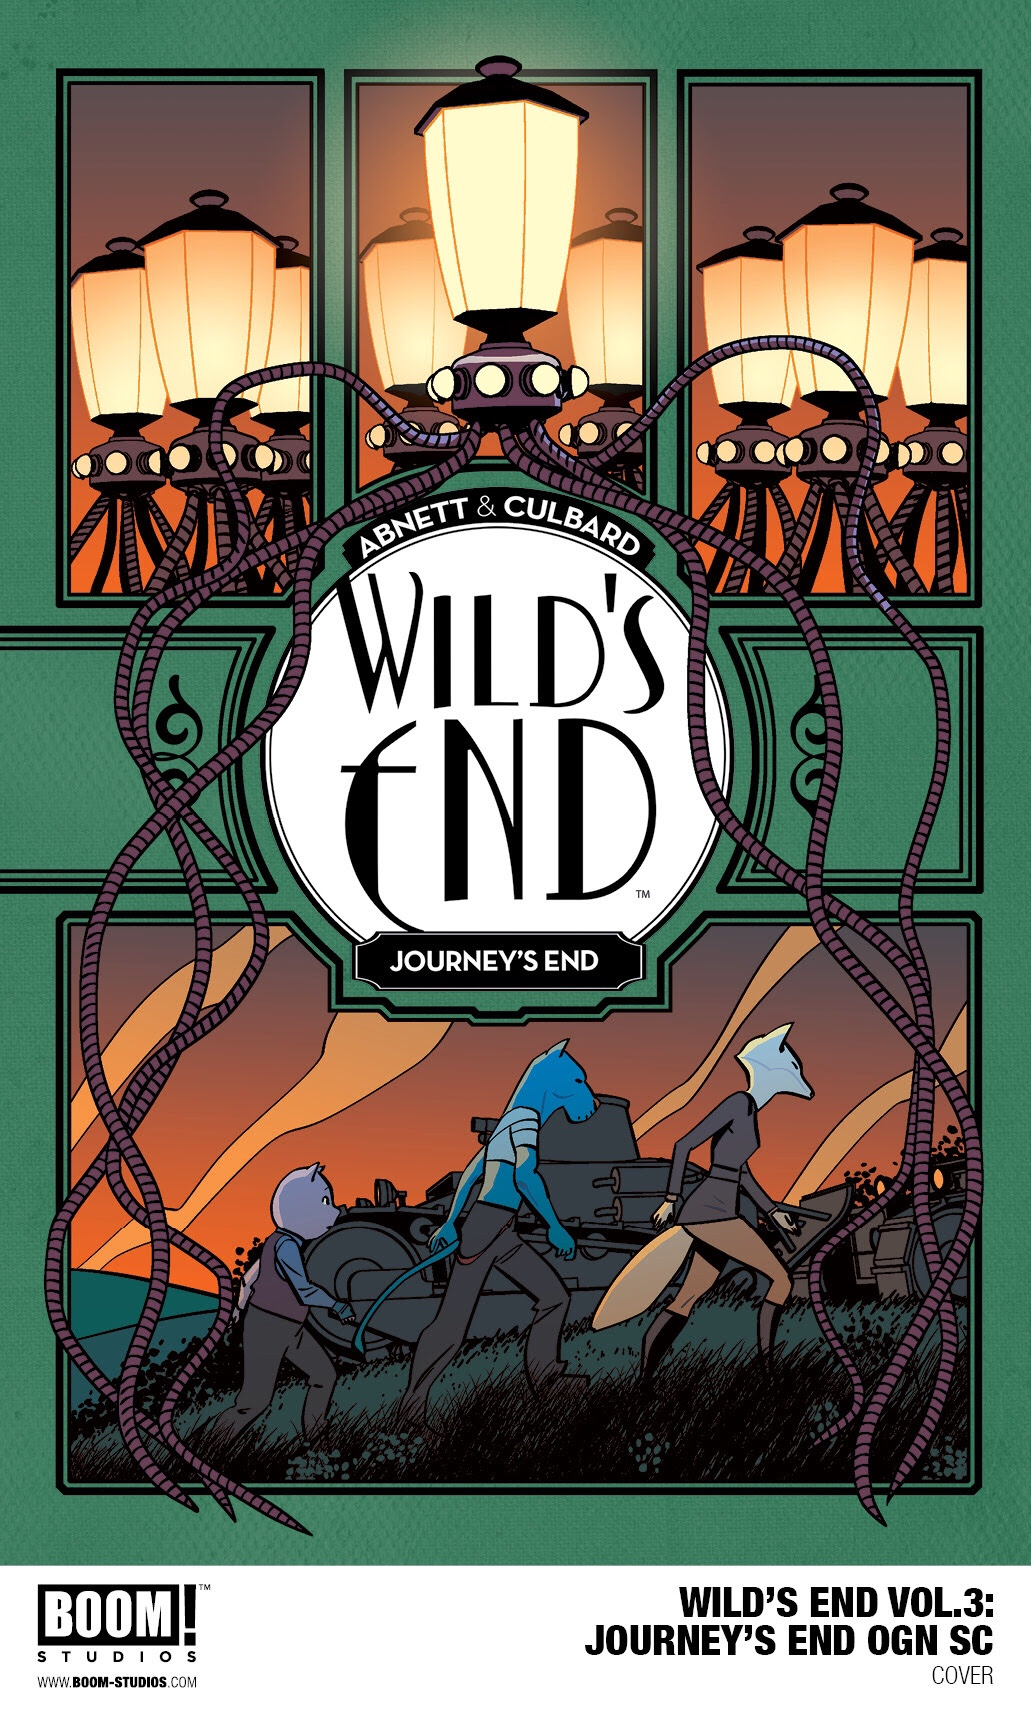 Wild's End - Journey's End